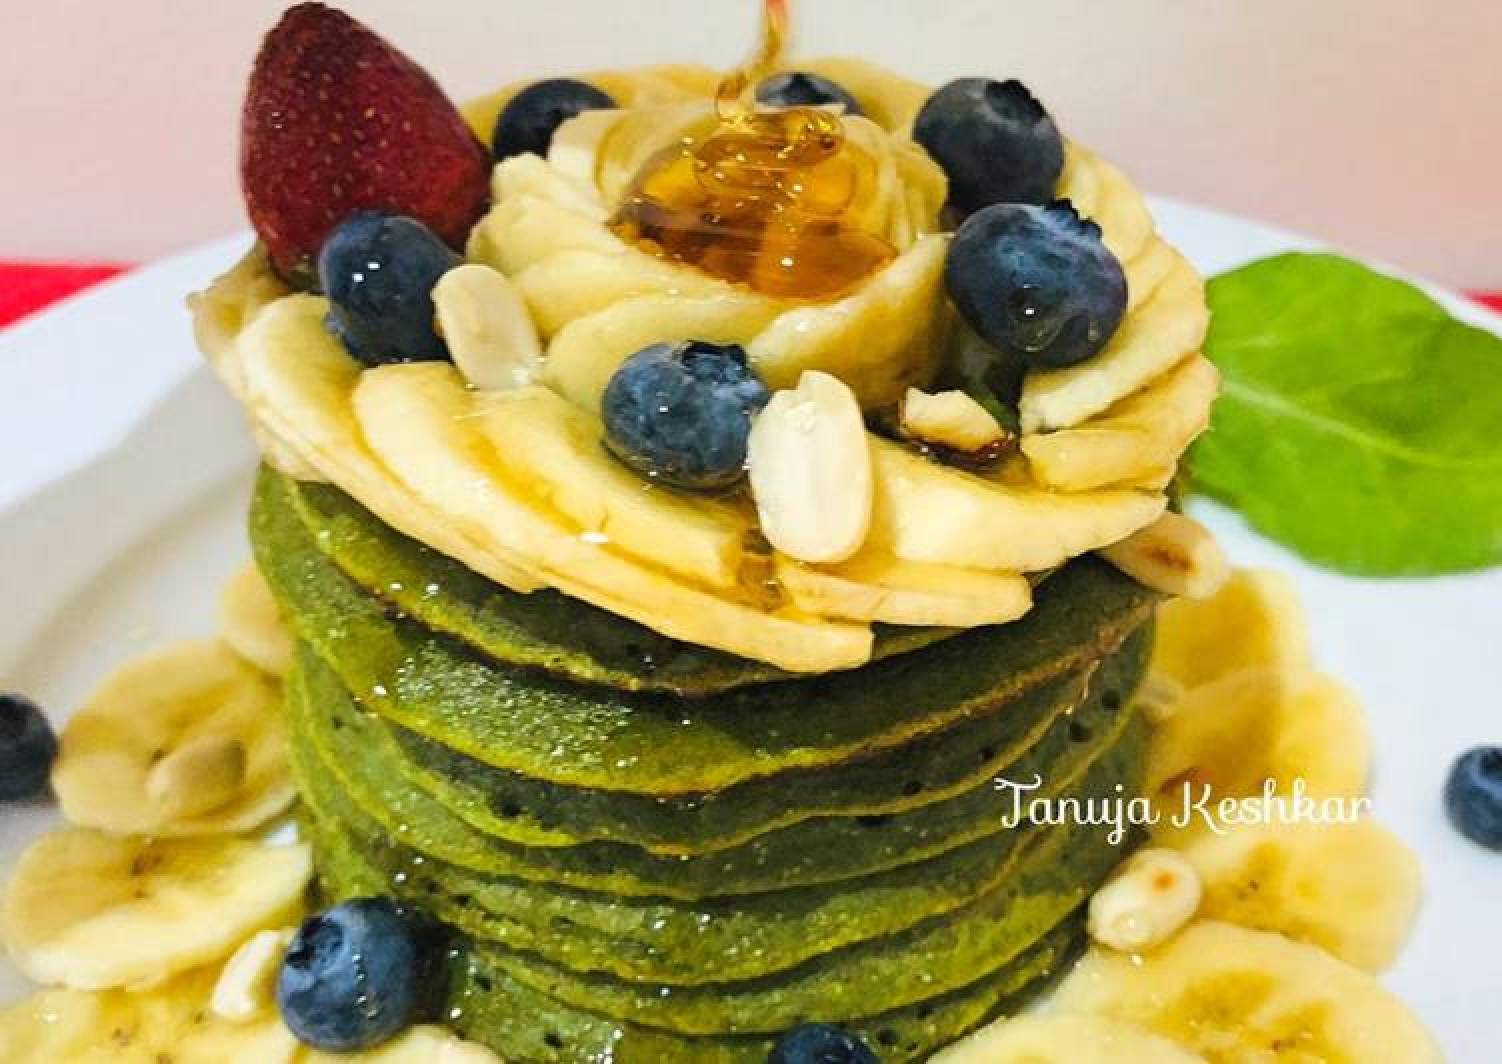 Banana spinach pancakes with peanuts